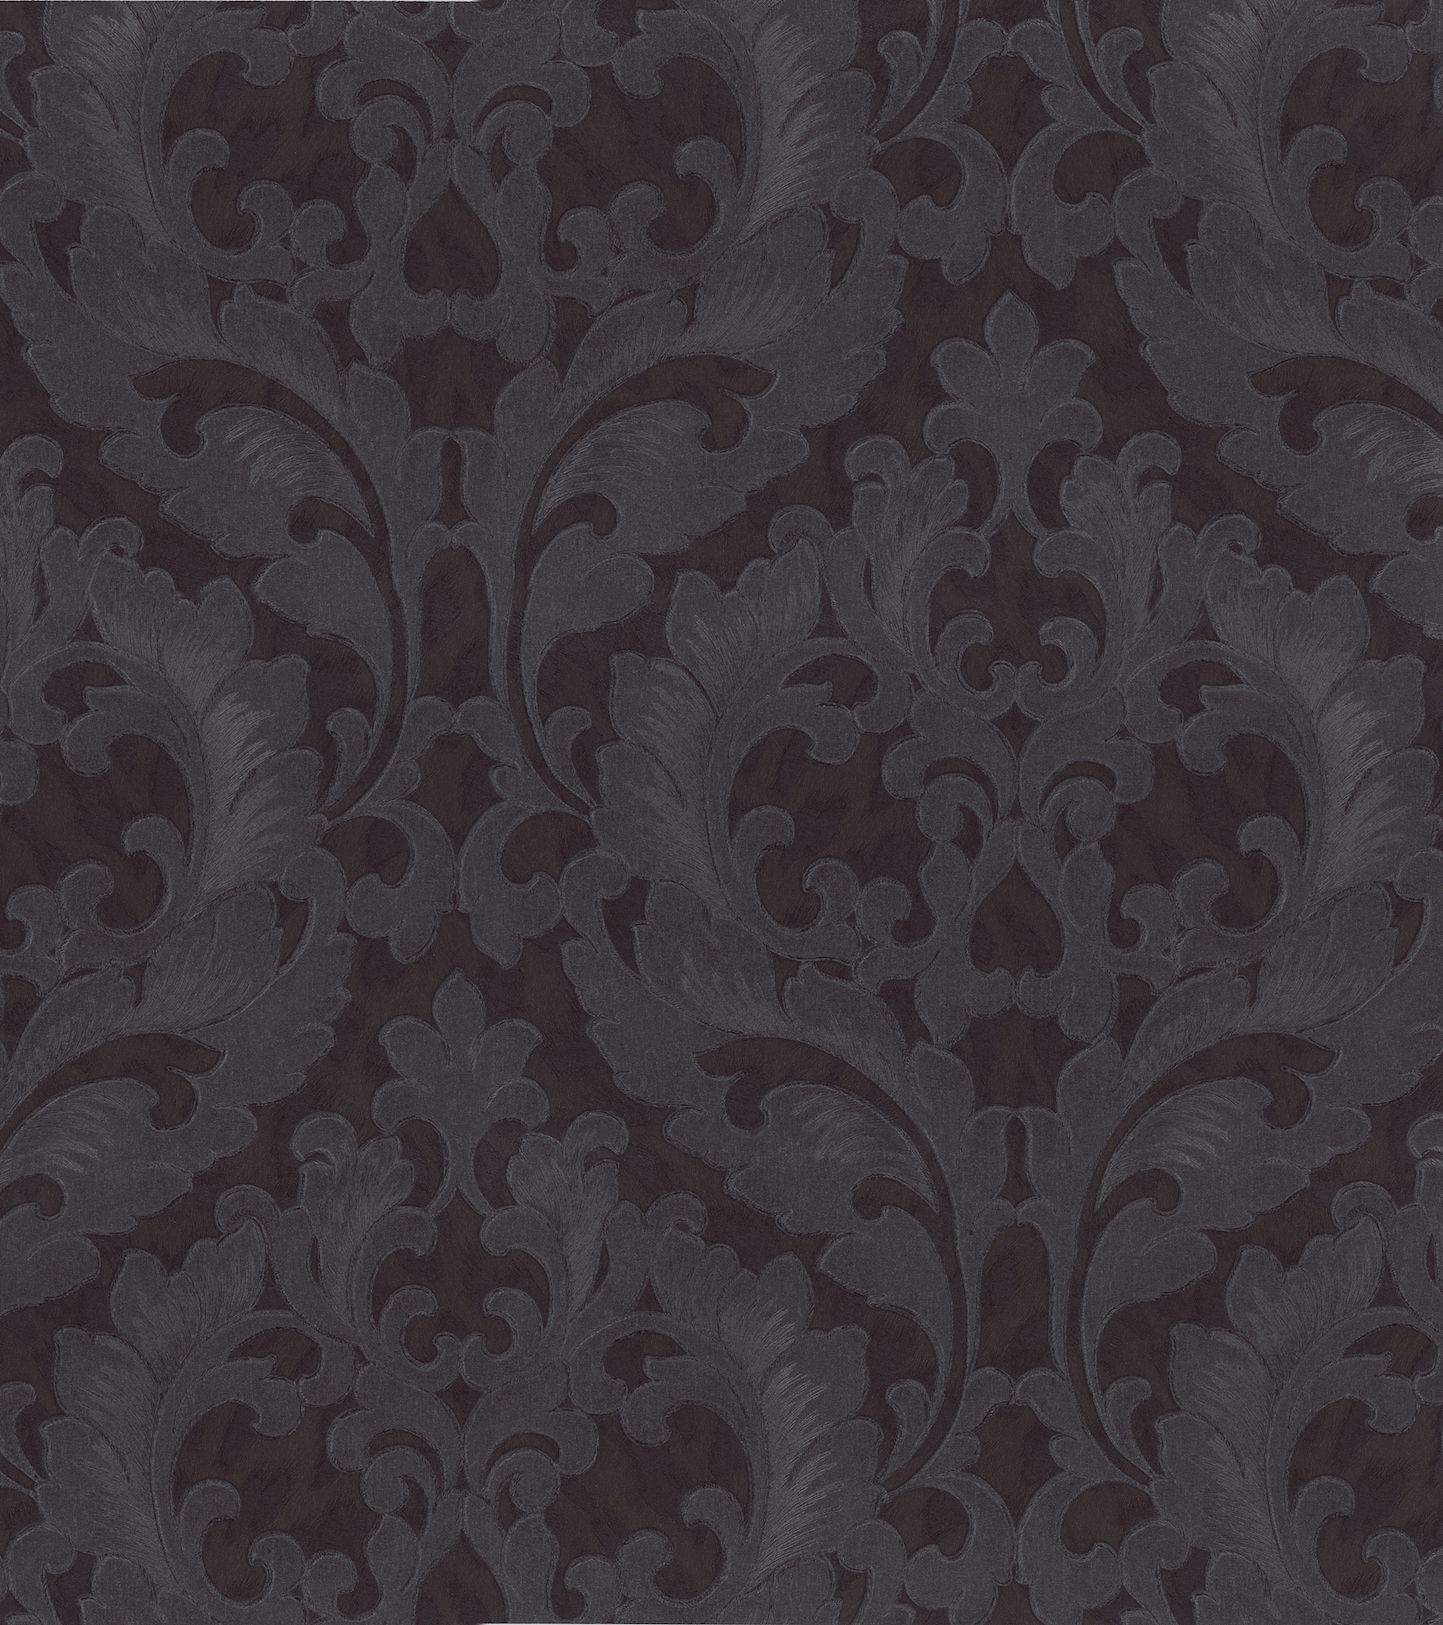 Gothic Wallpaper For Home roberto cavalli #wallpaper - see more at kings of chelsea, the